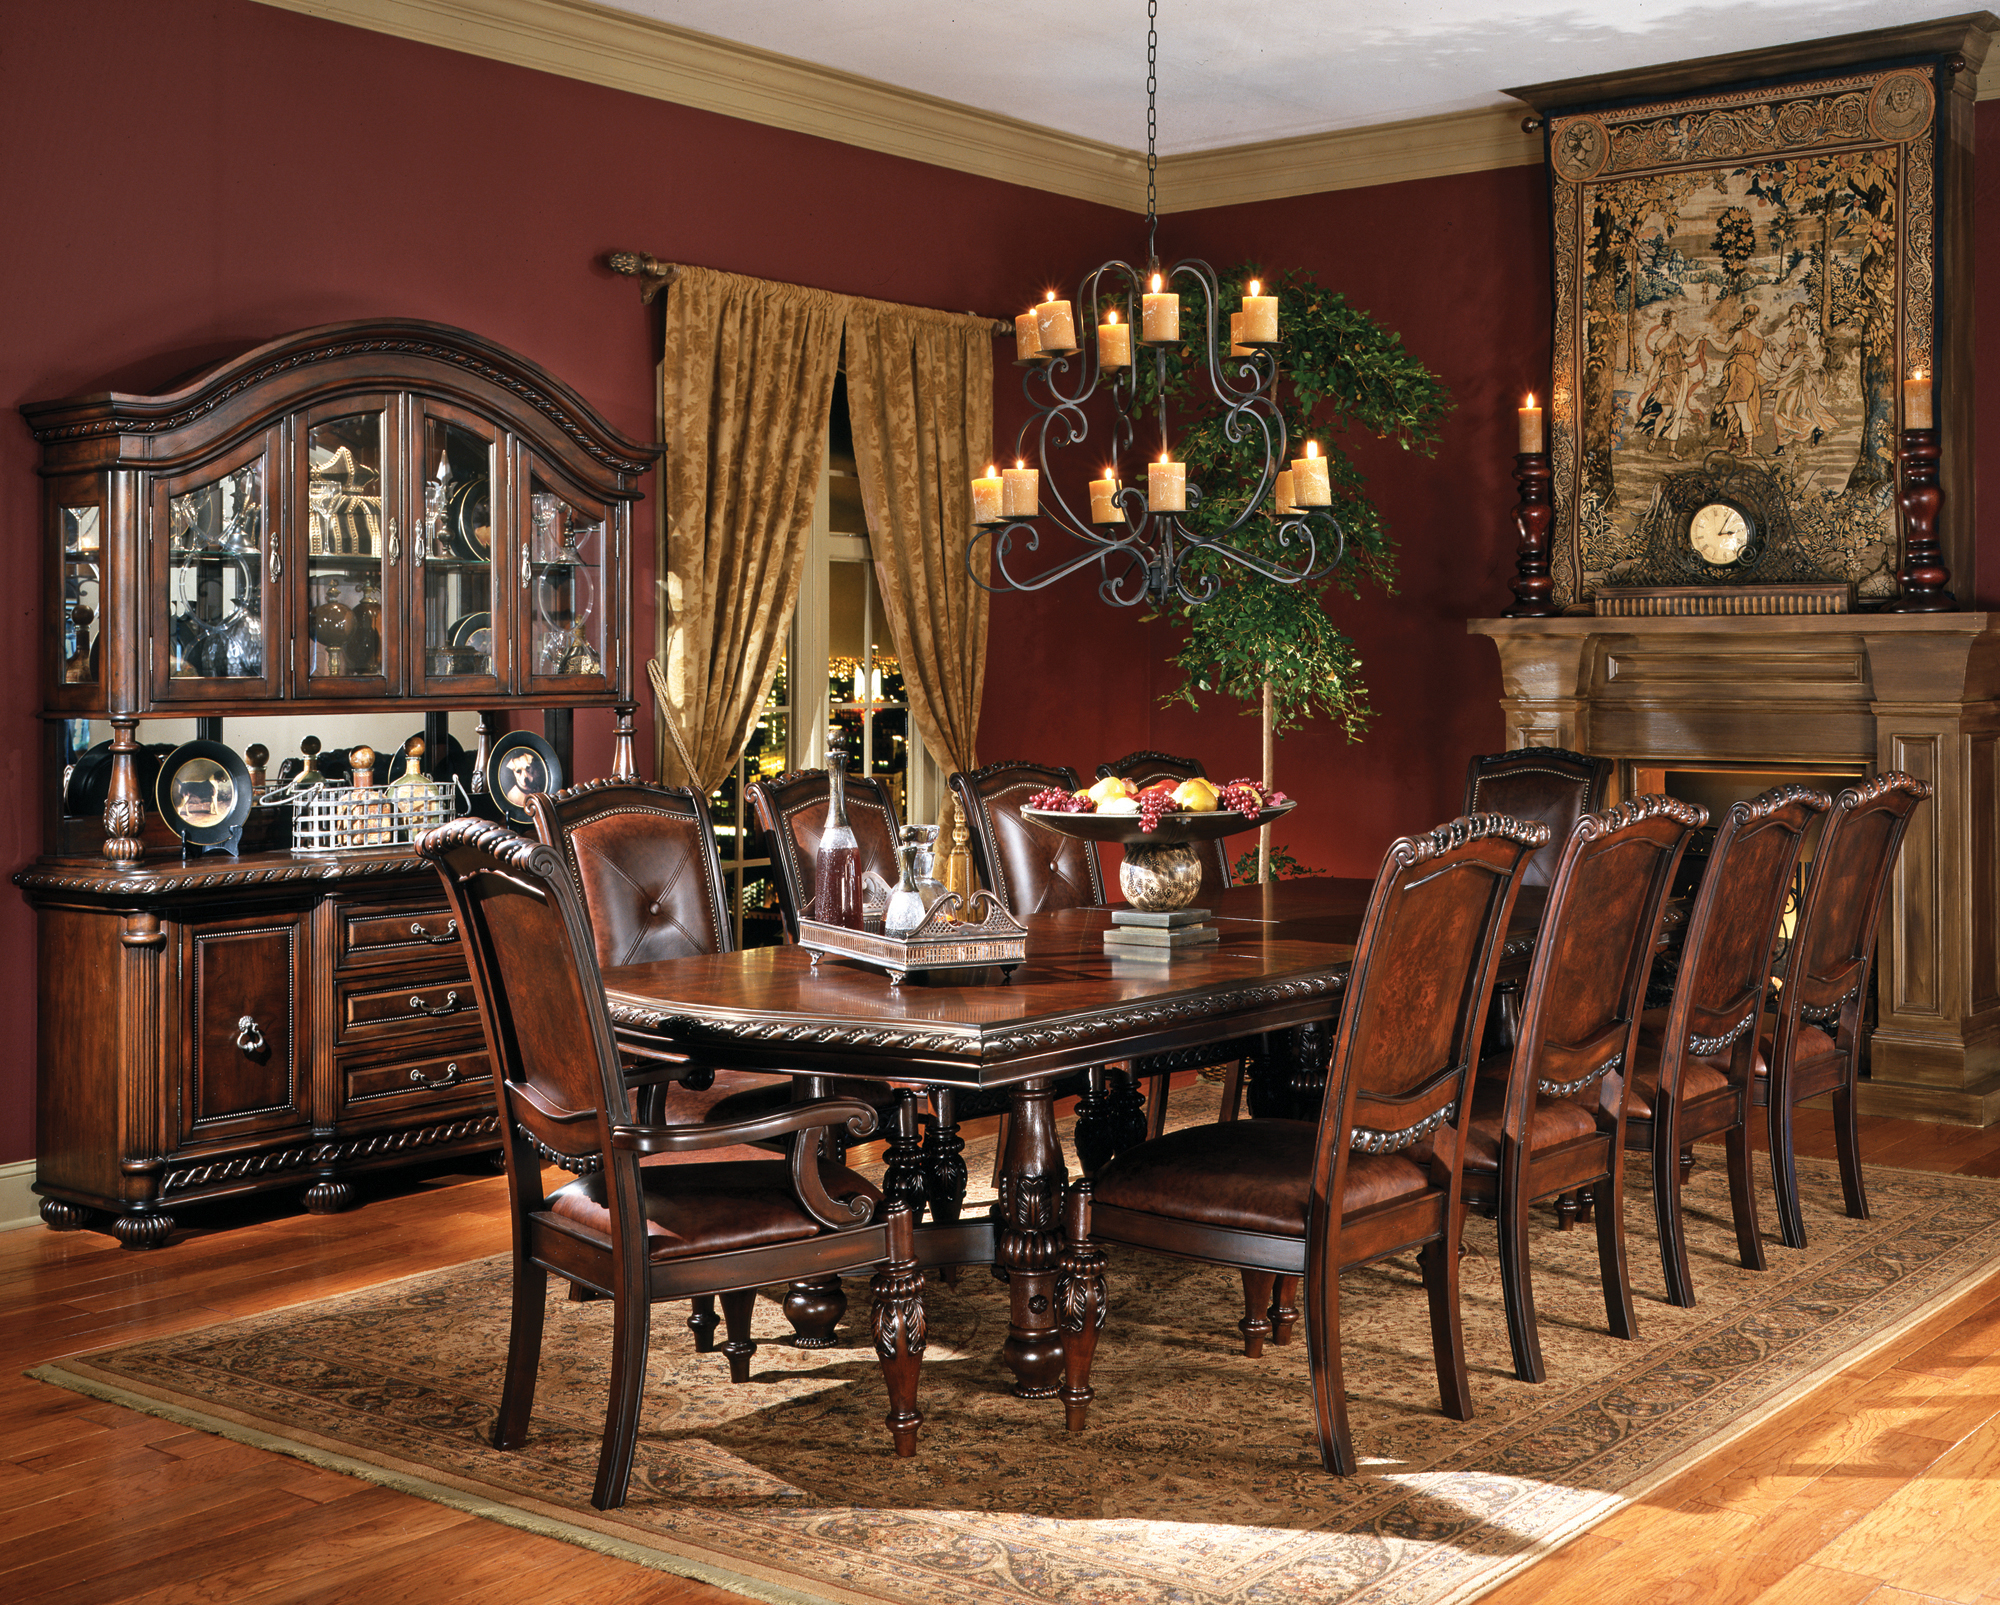 big dining room table 16 home ideas enhancedhomes org large square dining room table for 12 dining room tables